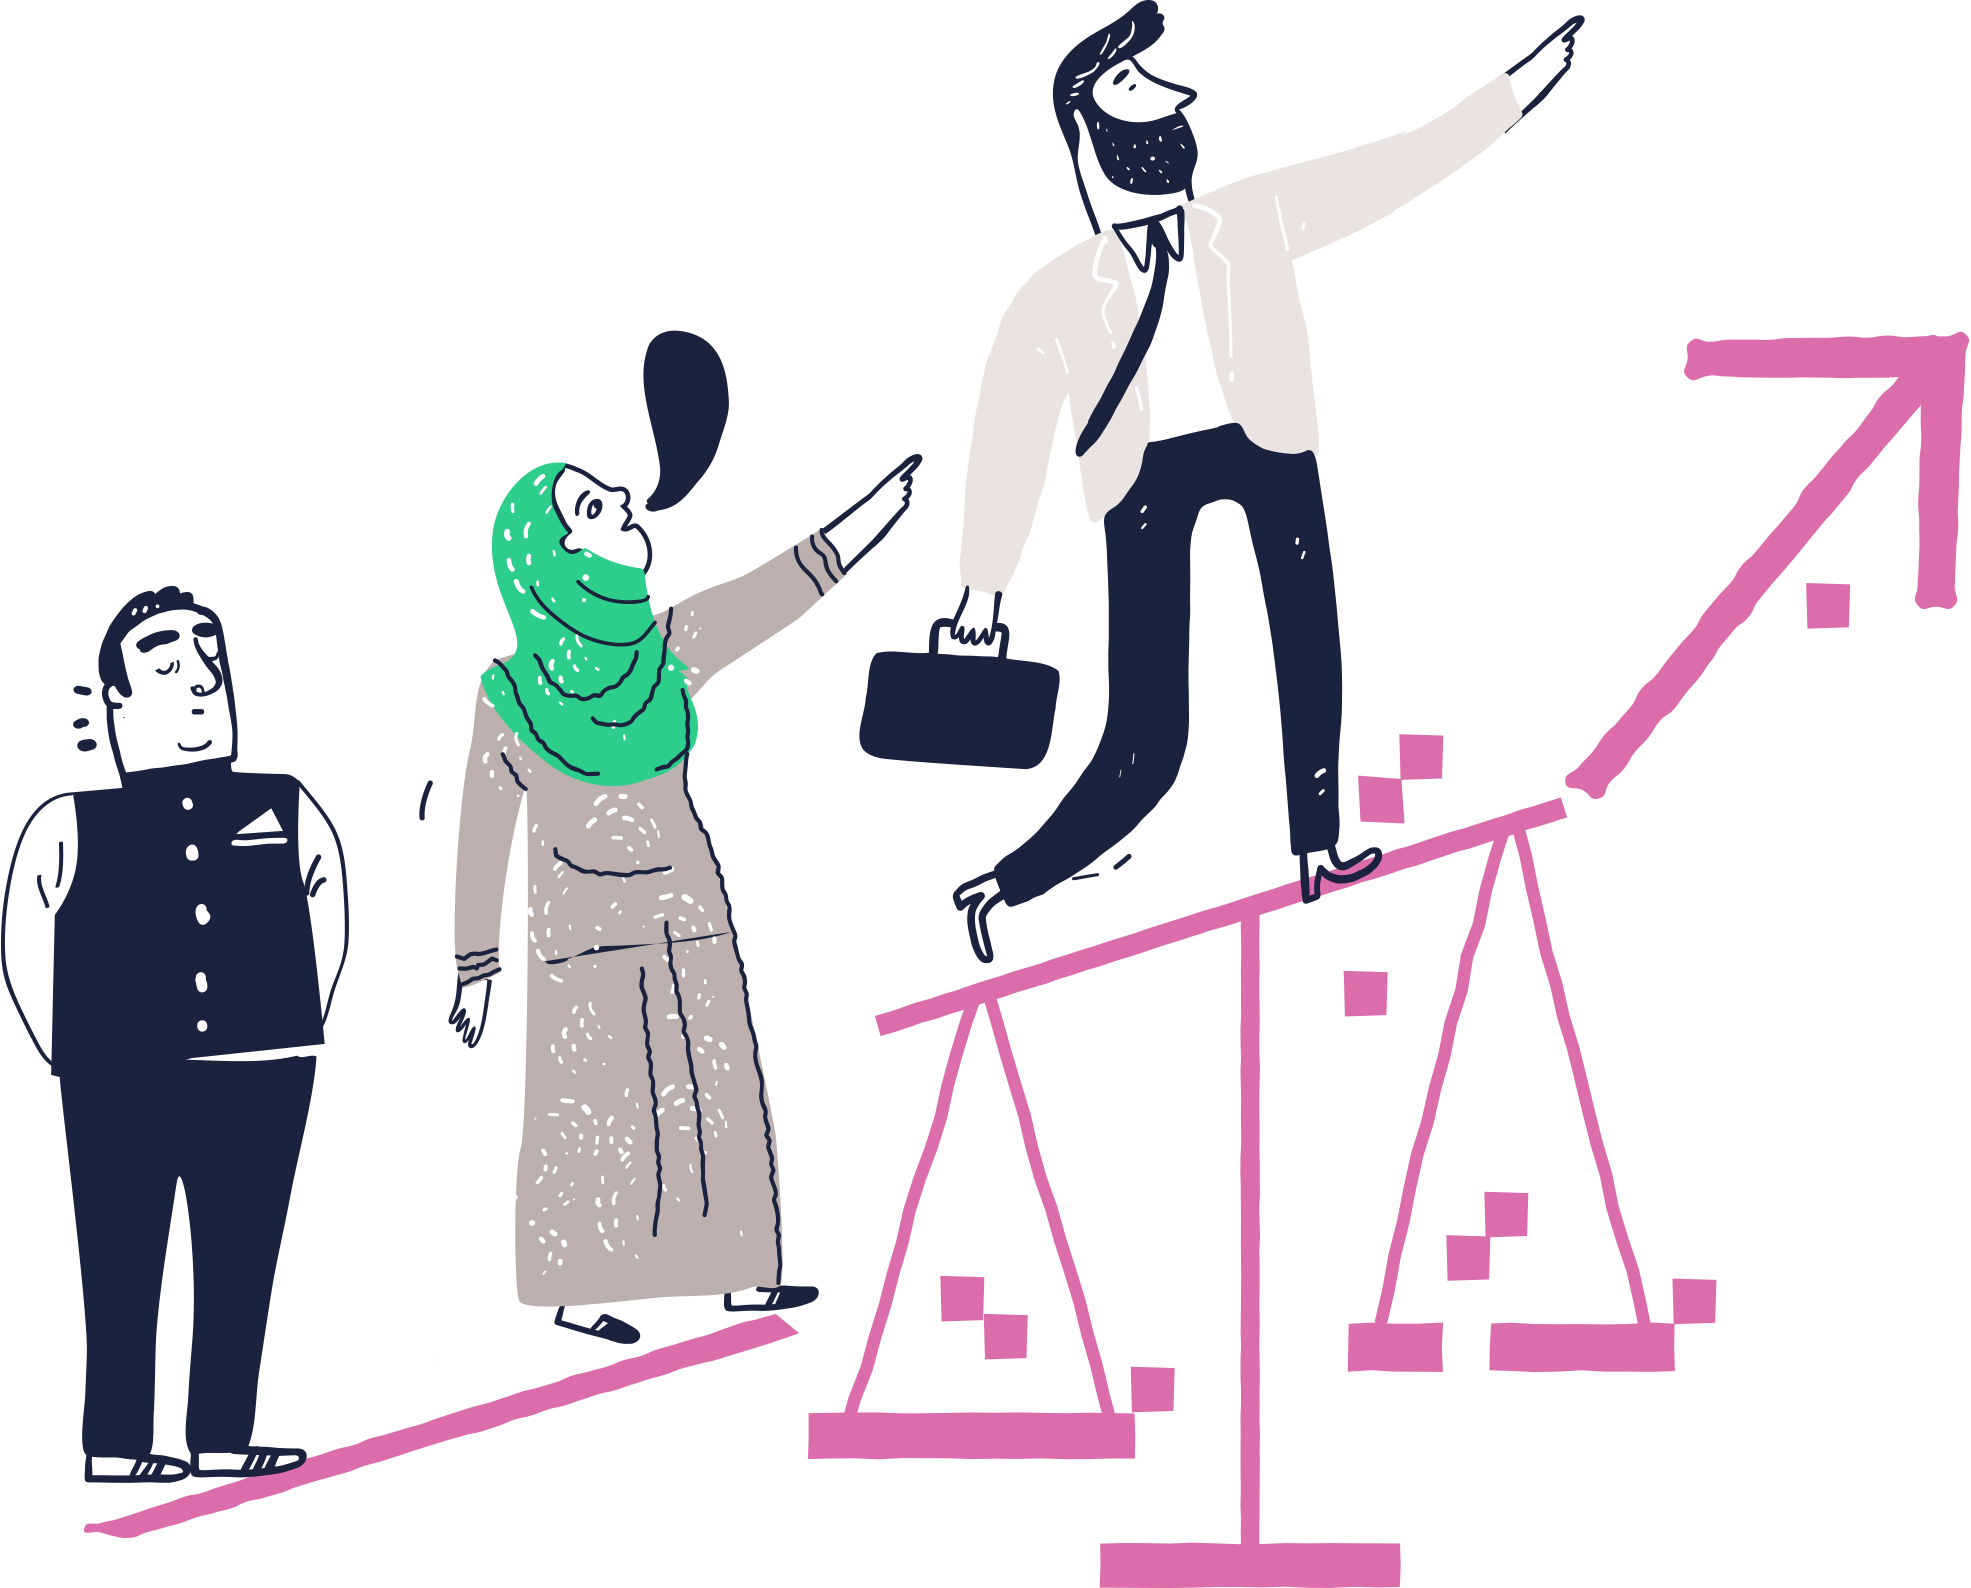 Illustration of people and a scale